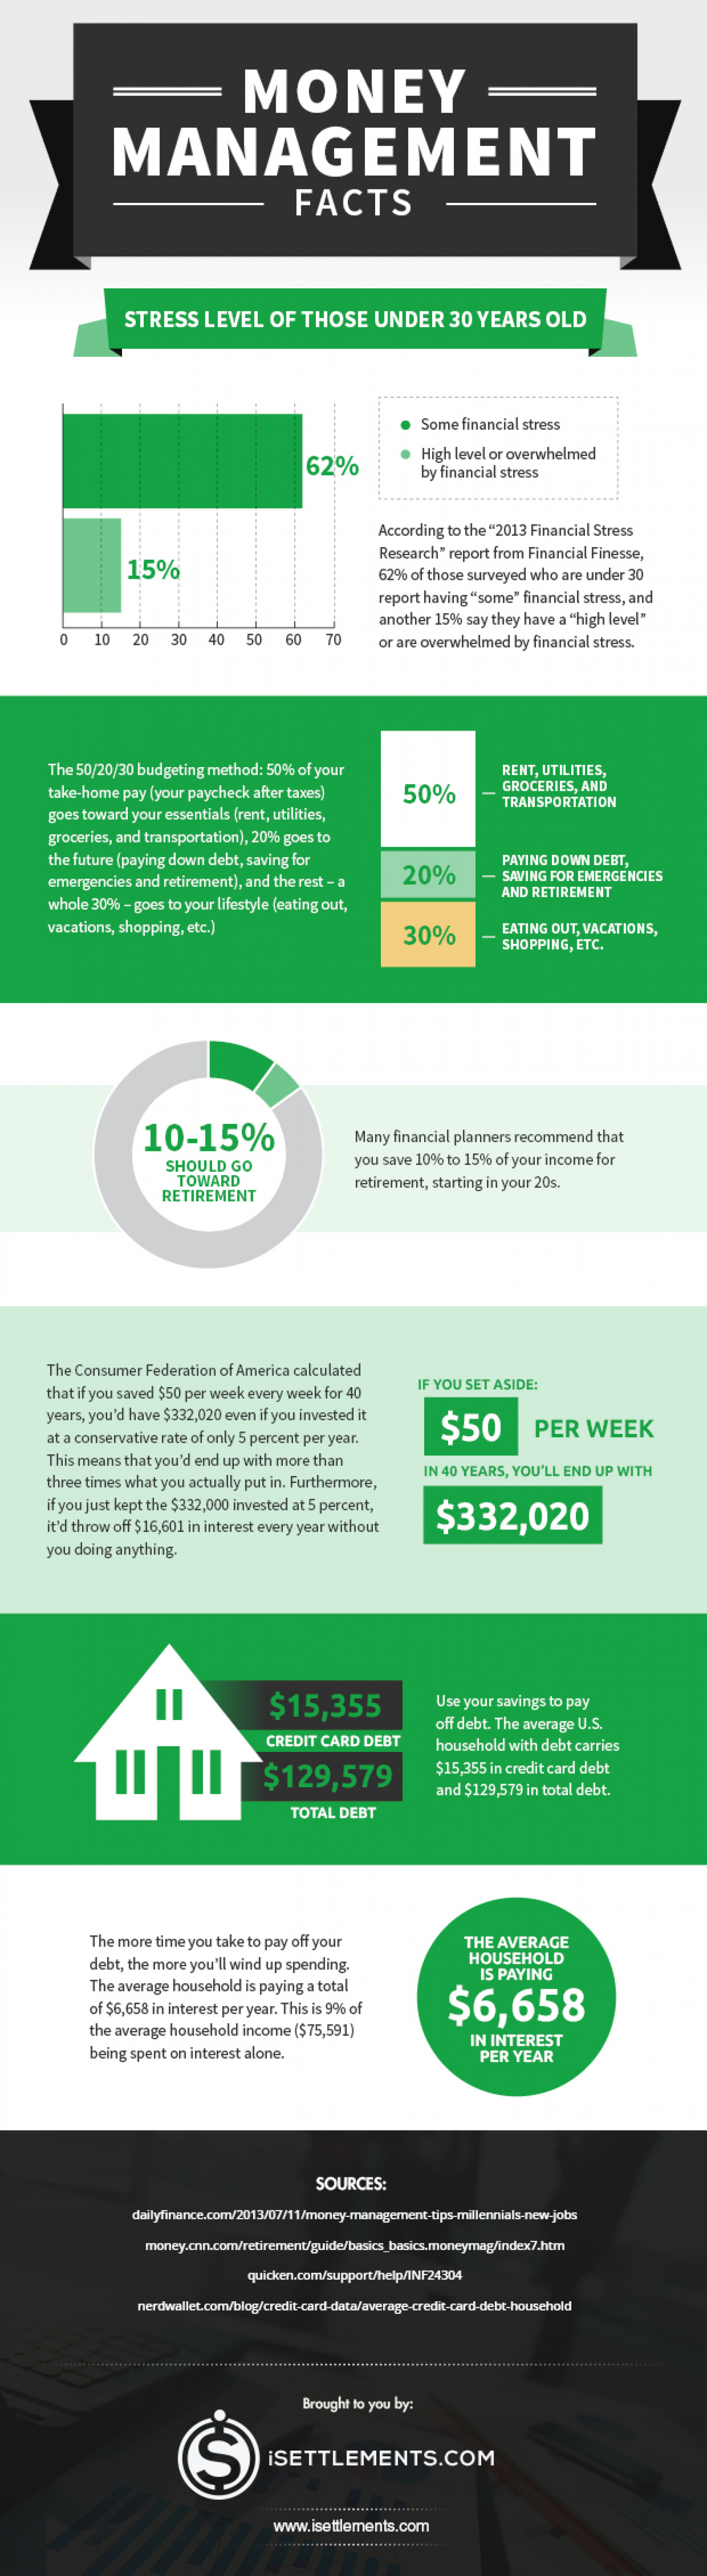 http://www.isettlements.com/the-money-management-facts-you-need-to-read/ Infographic